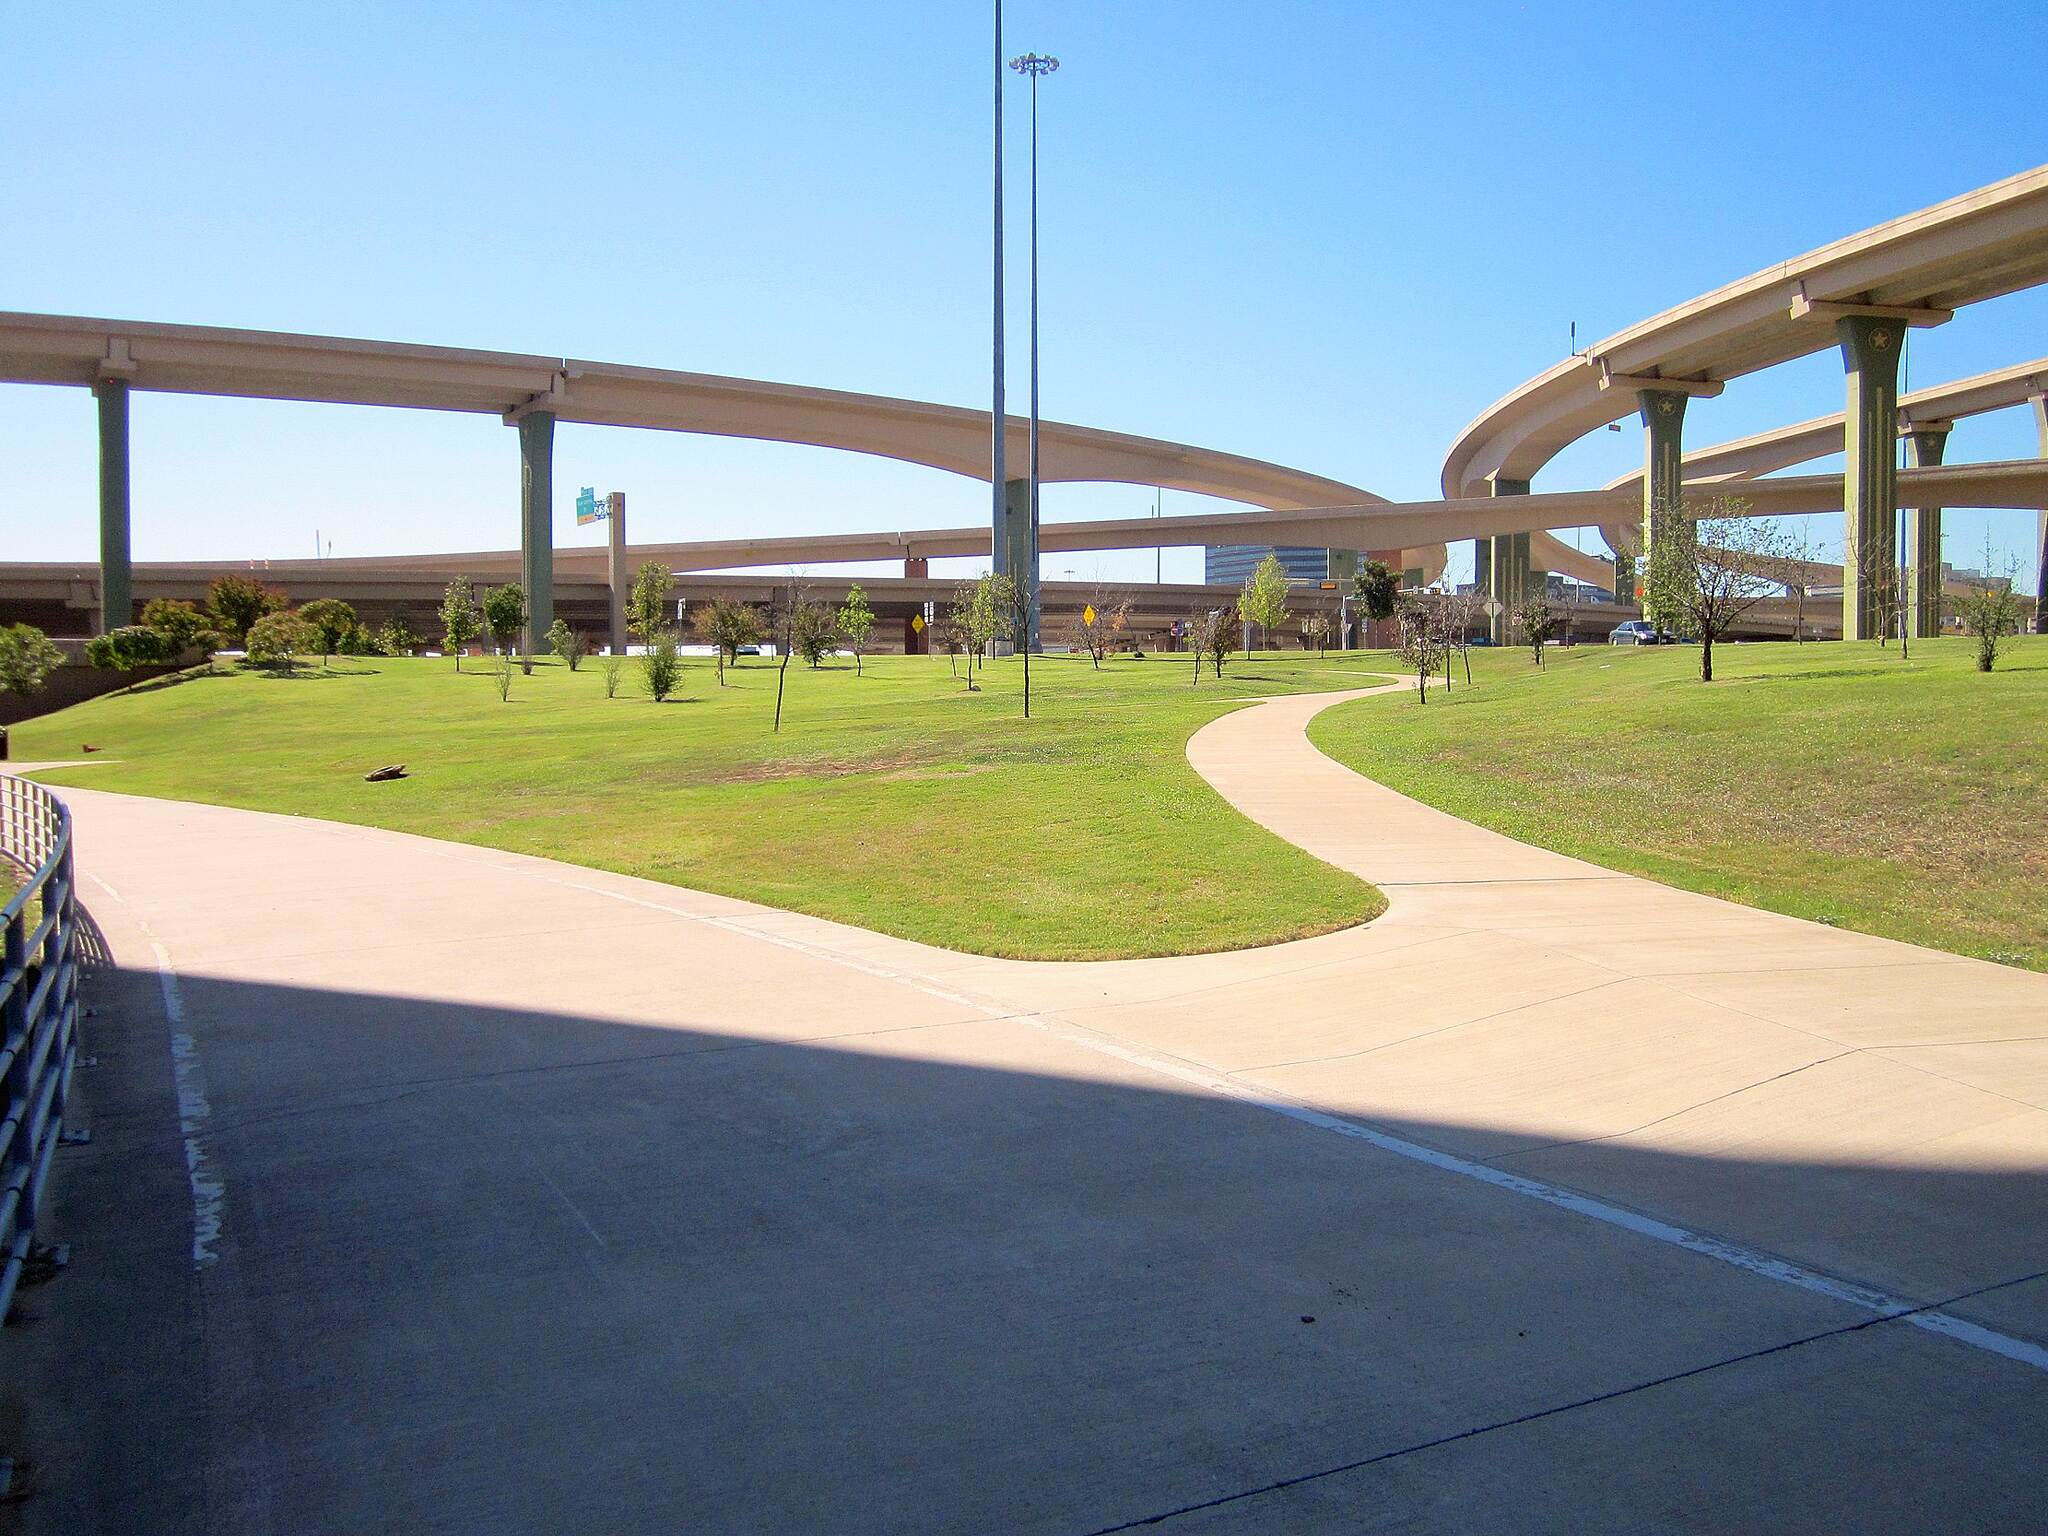 Cottonwood Trail The Dallas High-Five Interchange The interchange is considered by Popular Mechanics to be one of 'The World's 18 Strangest Roadways' because of its height (as high as a 12-story building), its 37 permanent bridges and other unusual design and construction features.